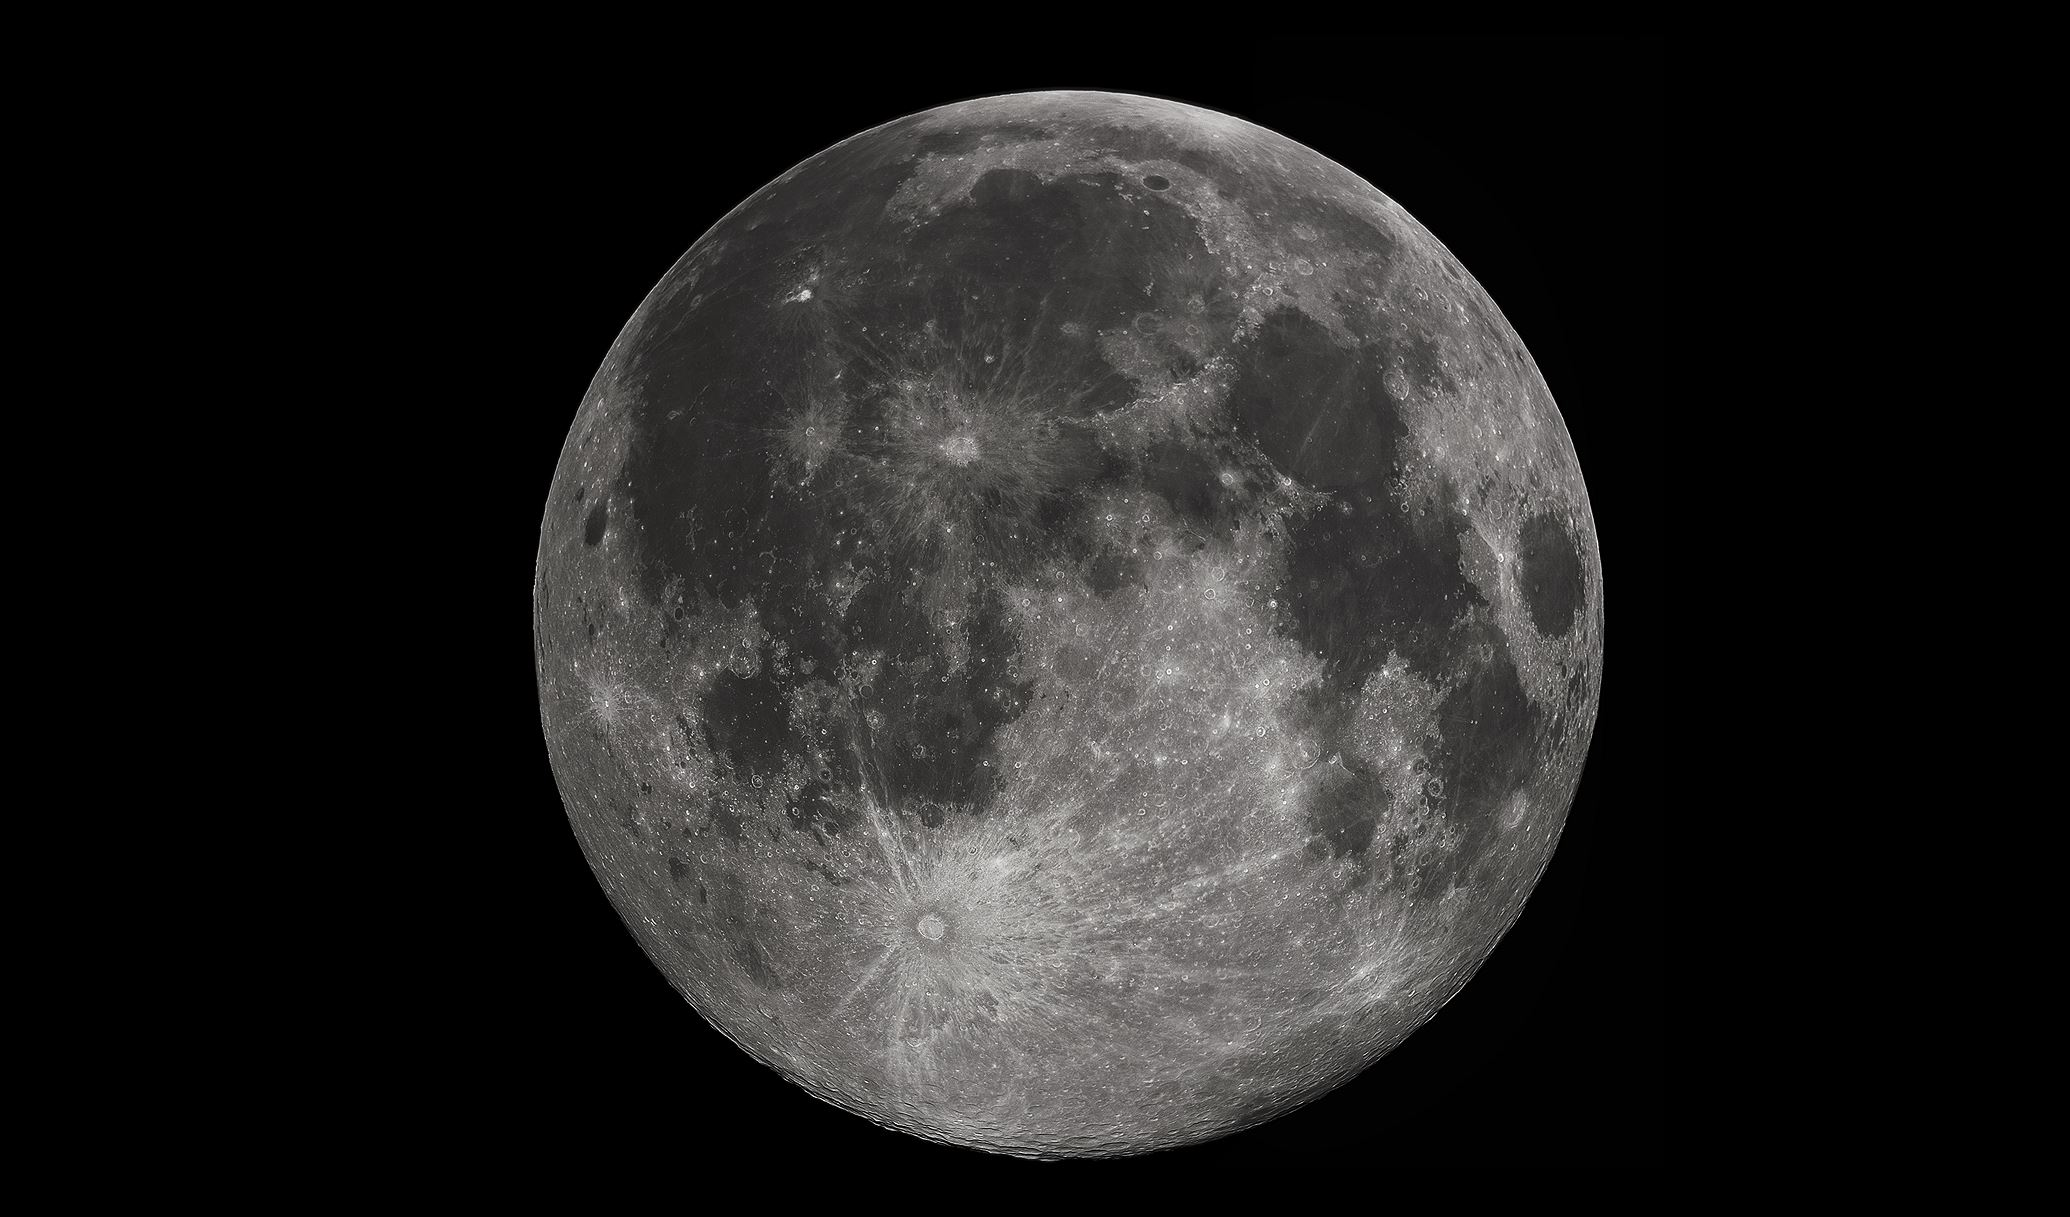 The moon could be mined for water - Image Credit:  Gregory H. Revera via Wikimedia Commons  / Edited by  Universal-Sci